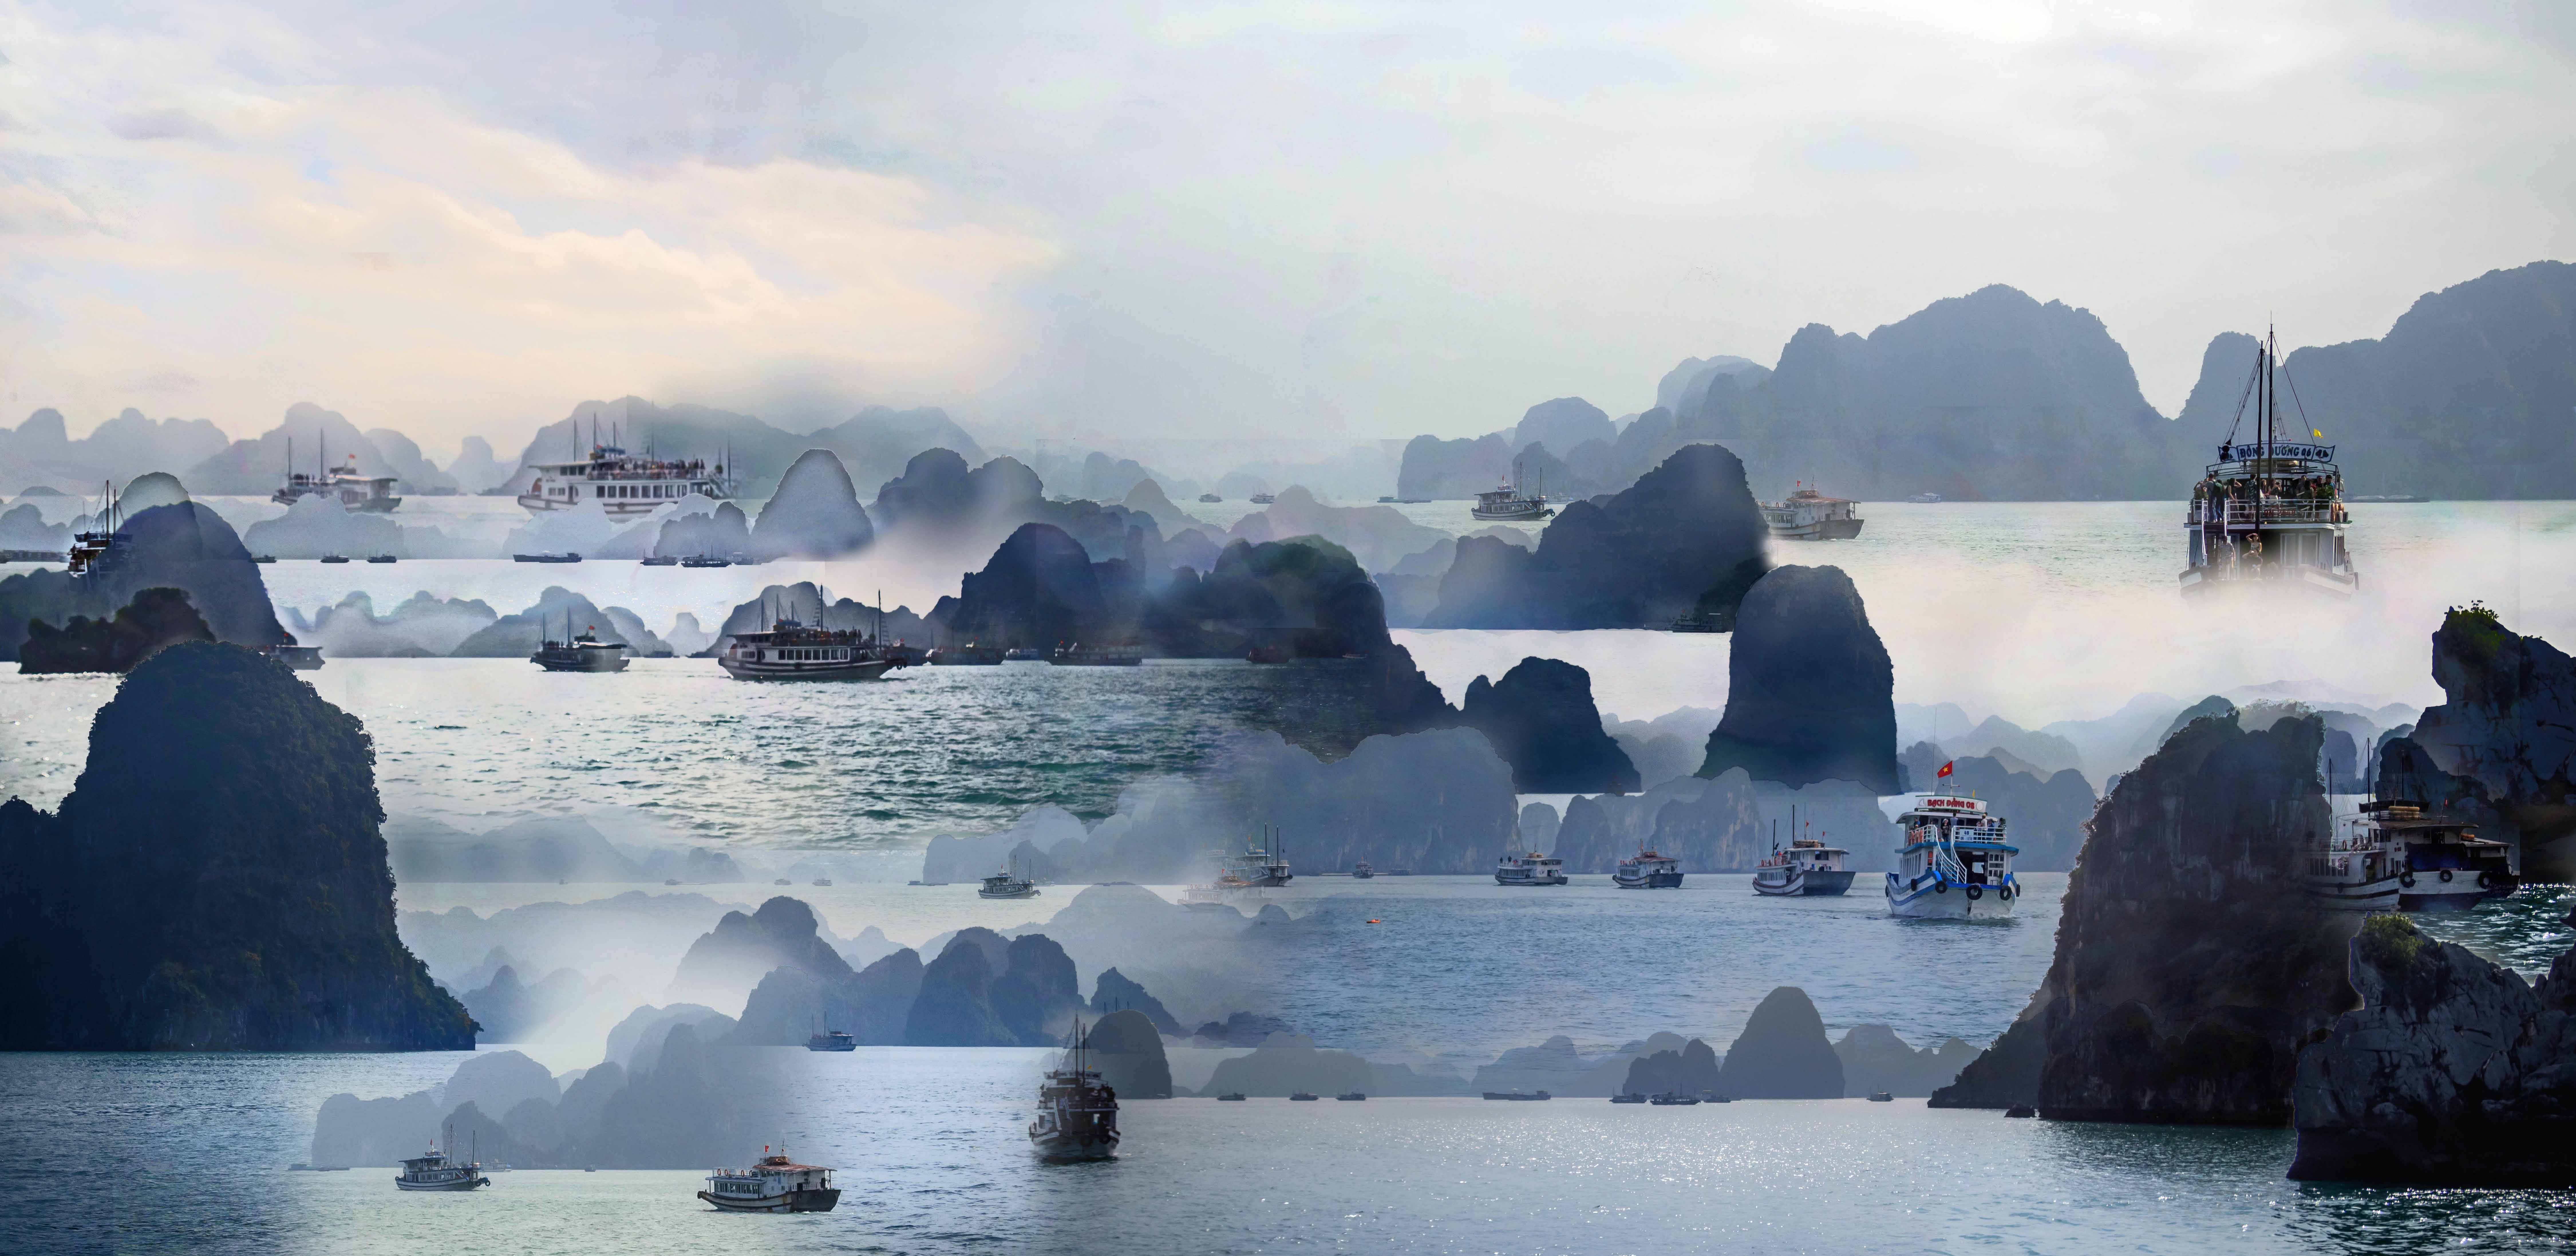 How Long, Halong Bay?